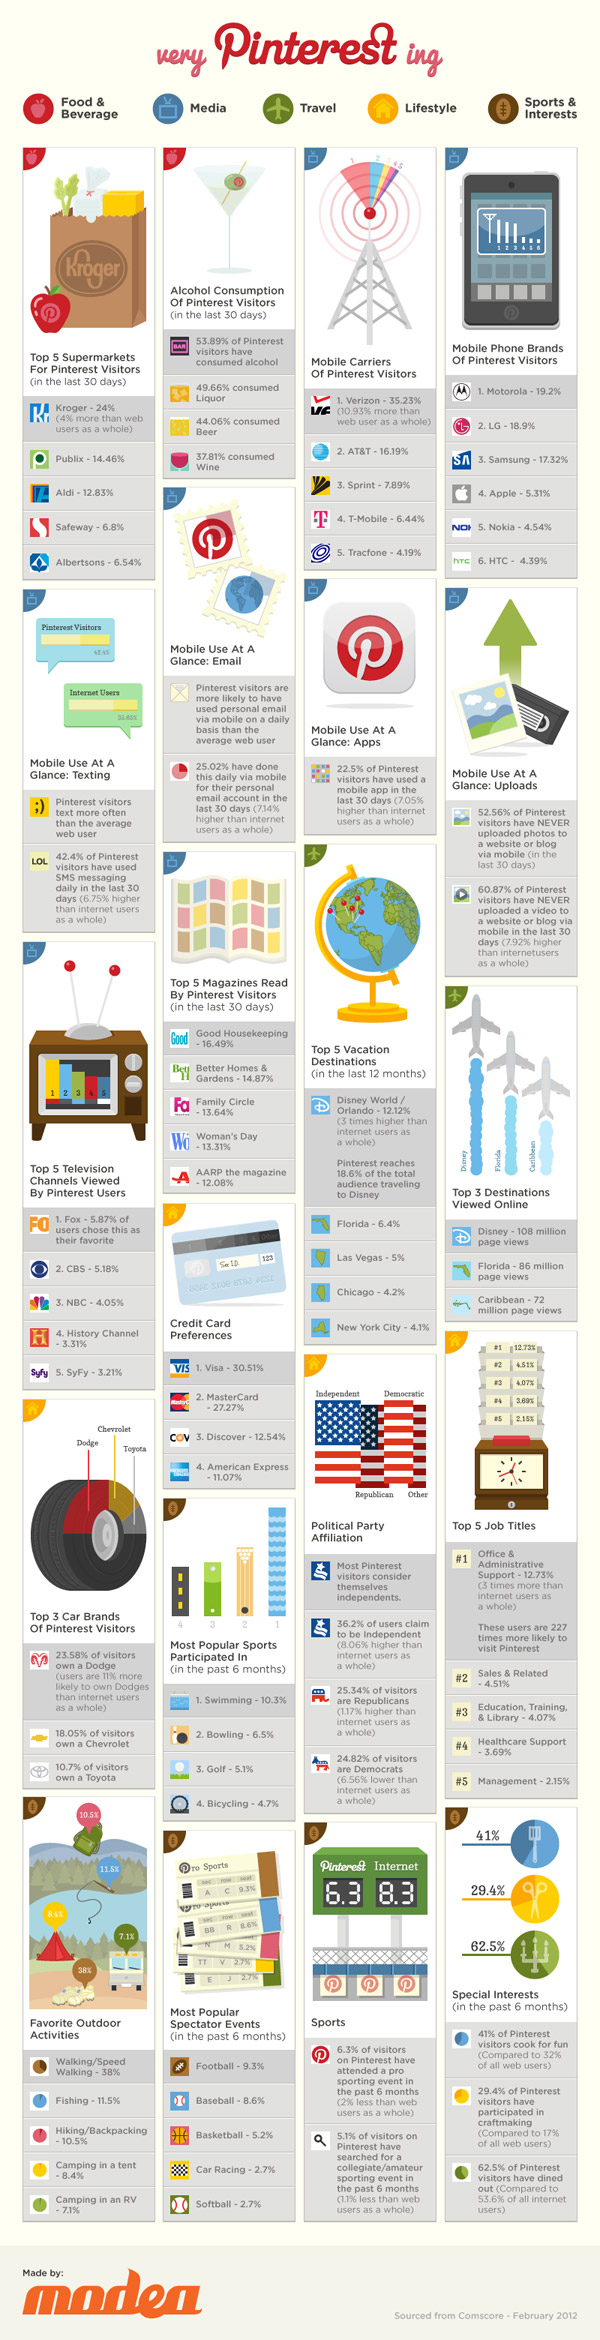 Very Pinterest ing (Infographic) image lifestyle of the pinterest user